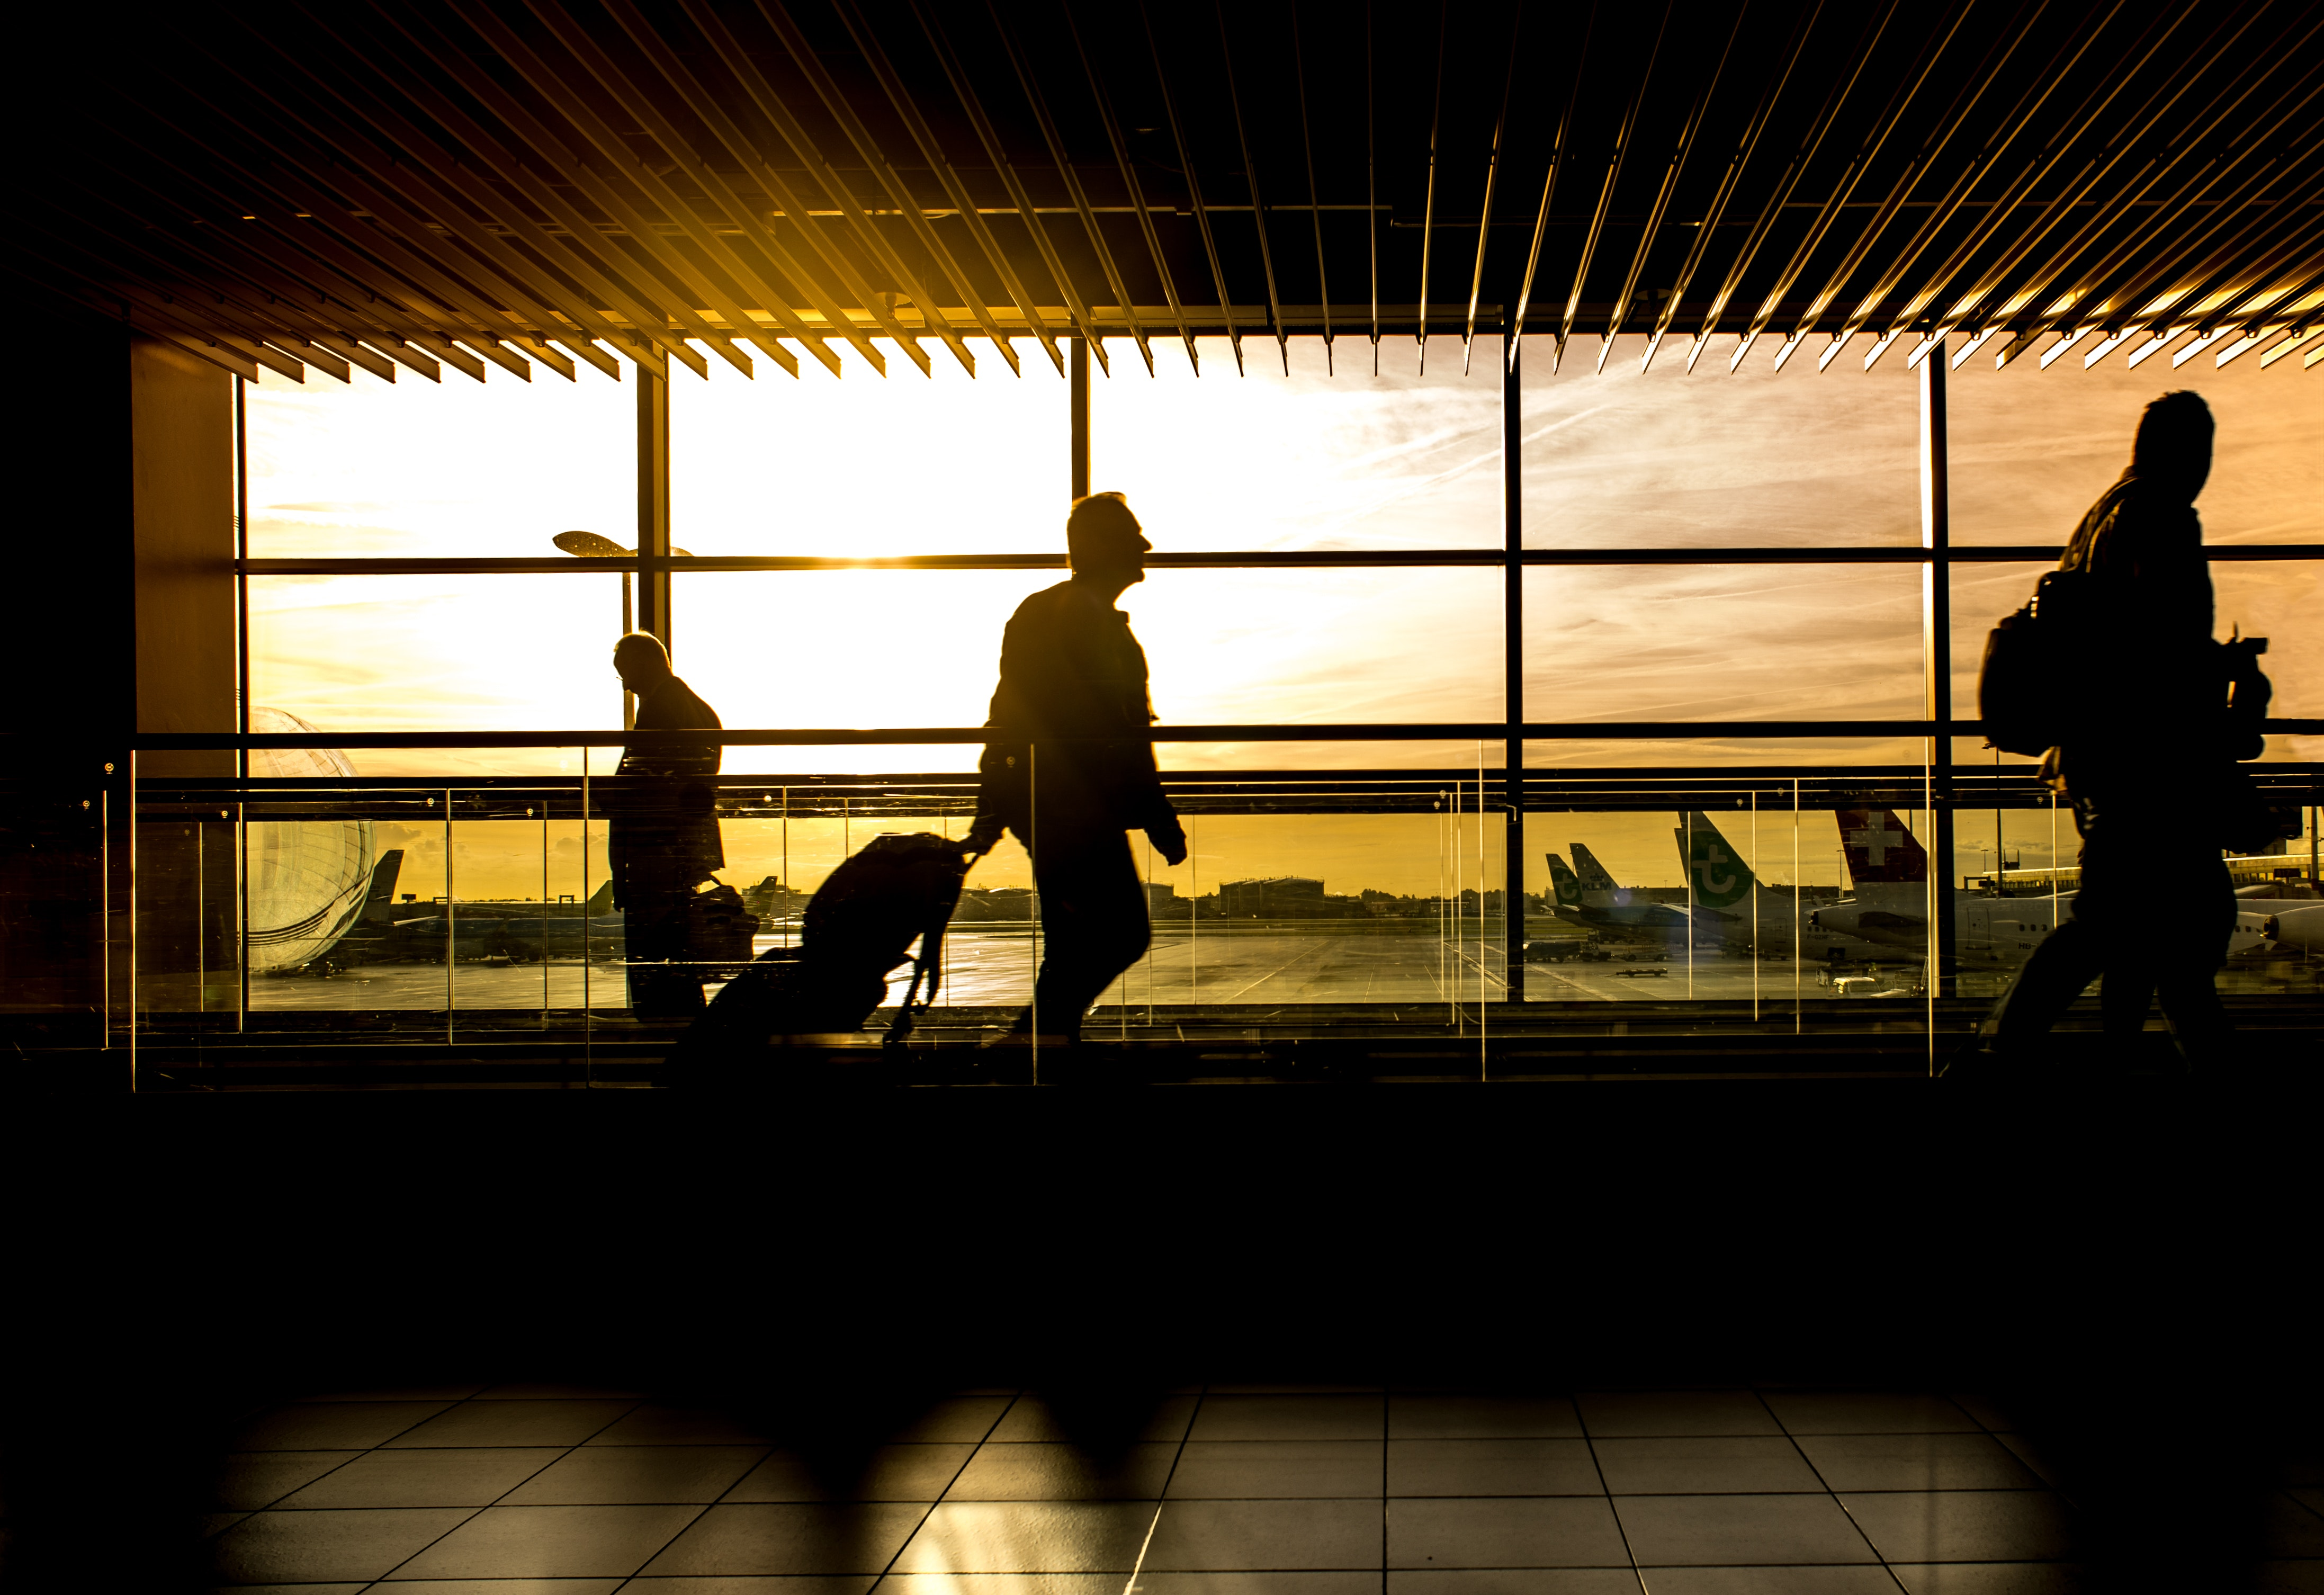 Silhouette of person in airport photo